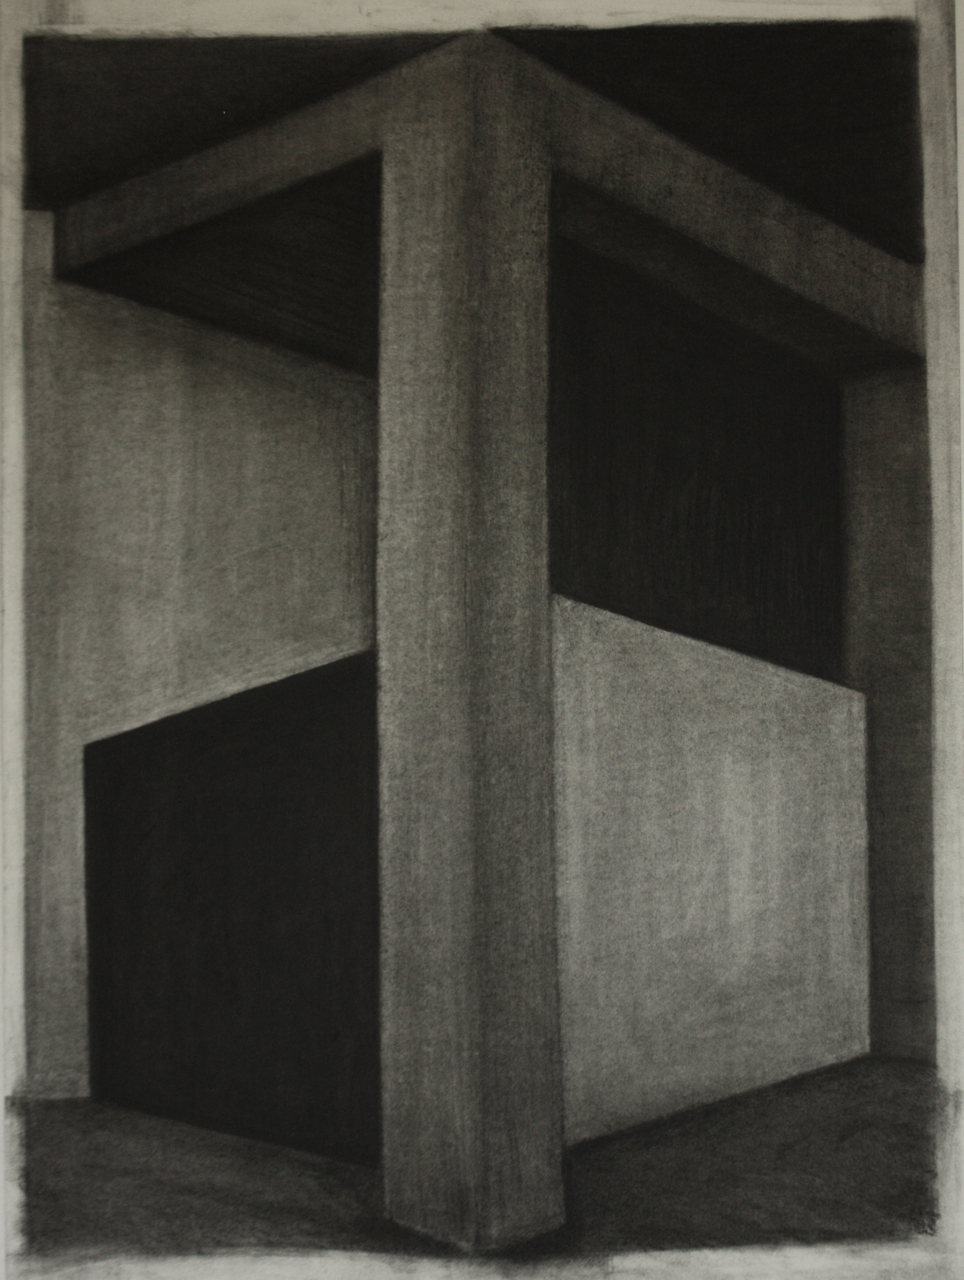 K-002, Charcoal on paper, 74x54cm